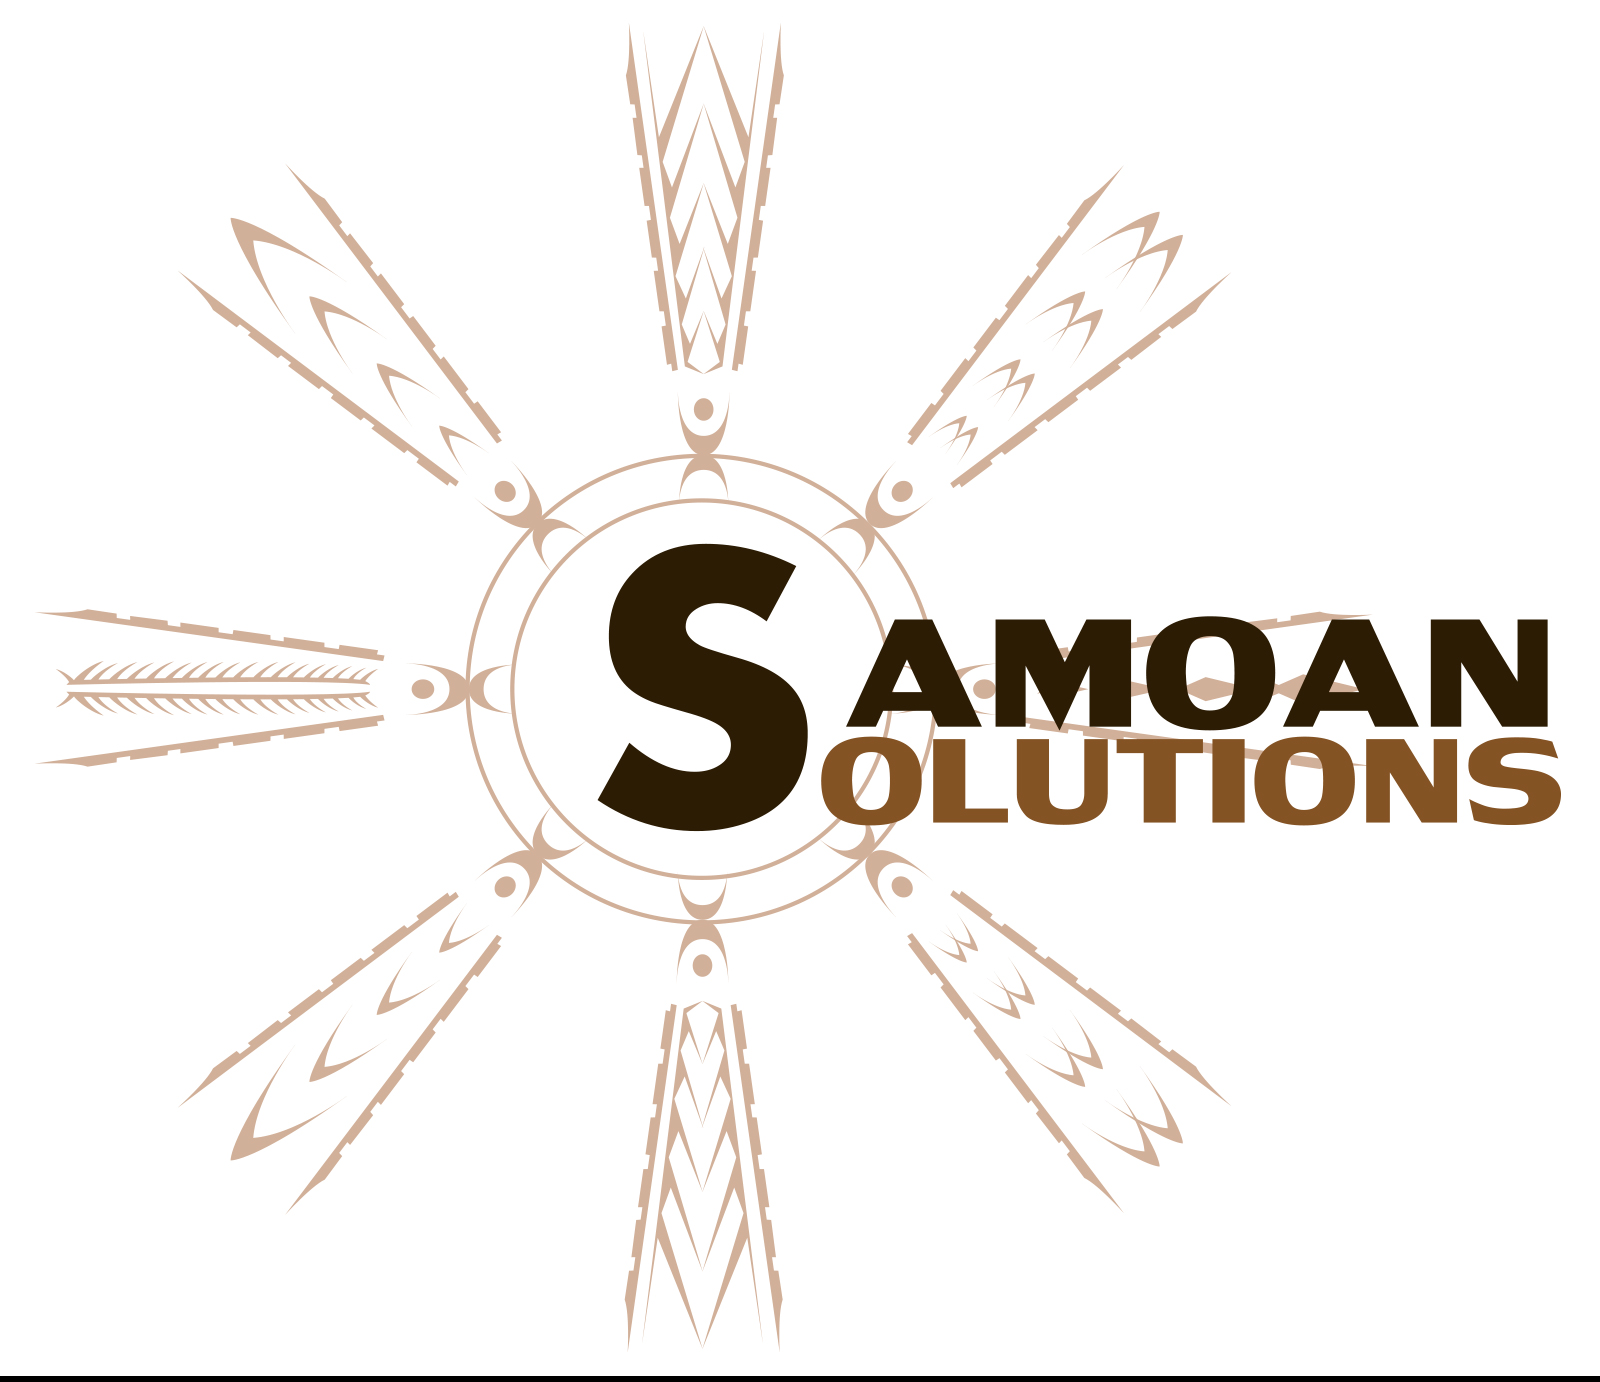 Sāmoan Solutions by Jon Apisa